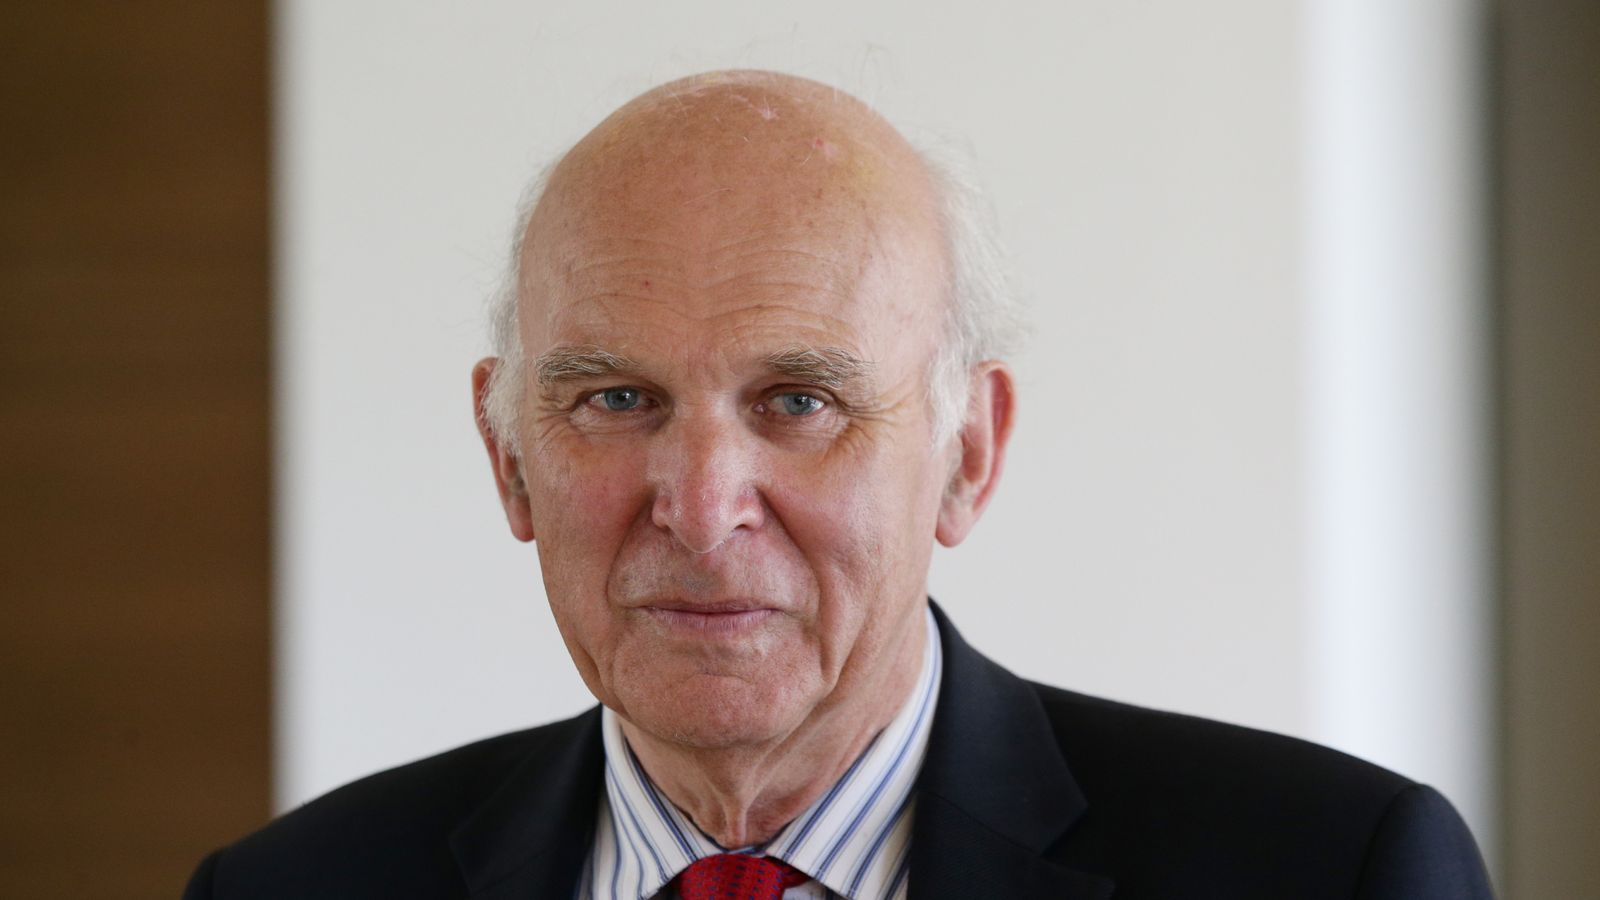 A snapshot of Vince Cable's voting history